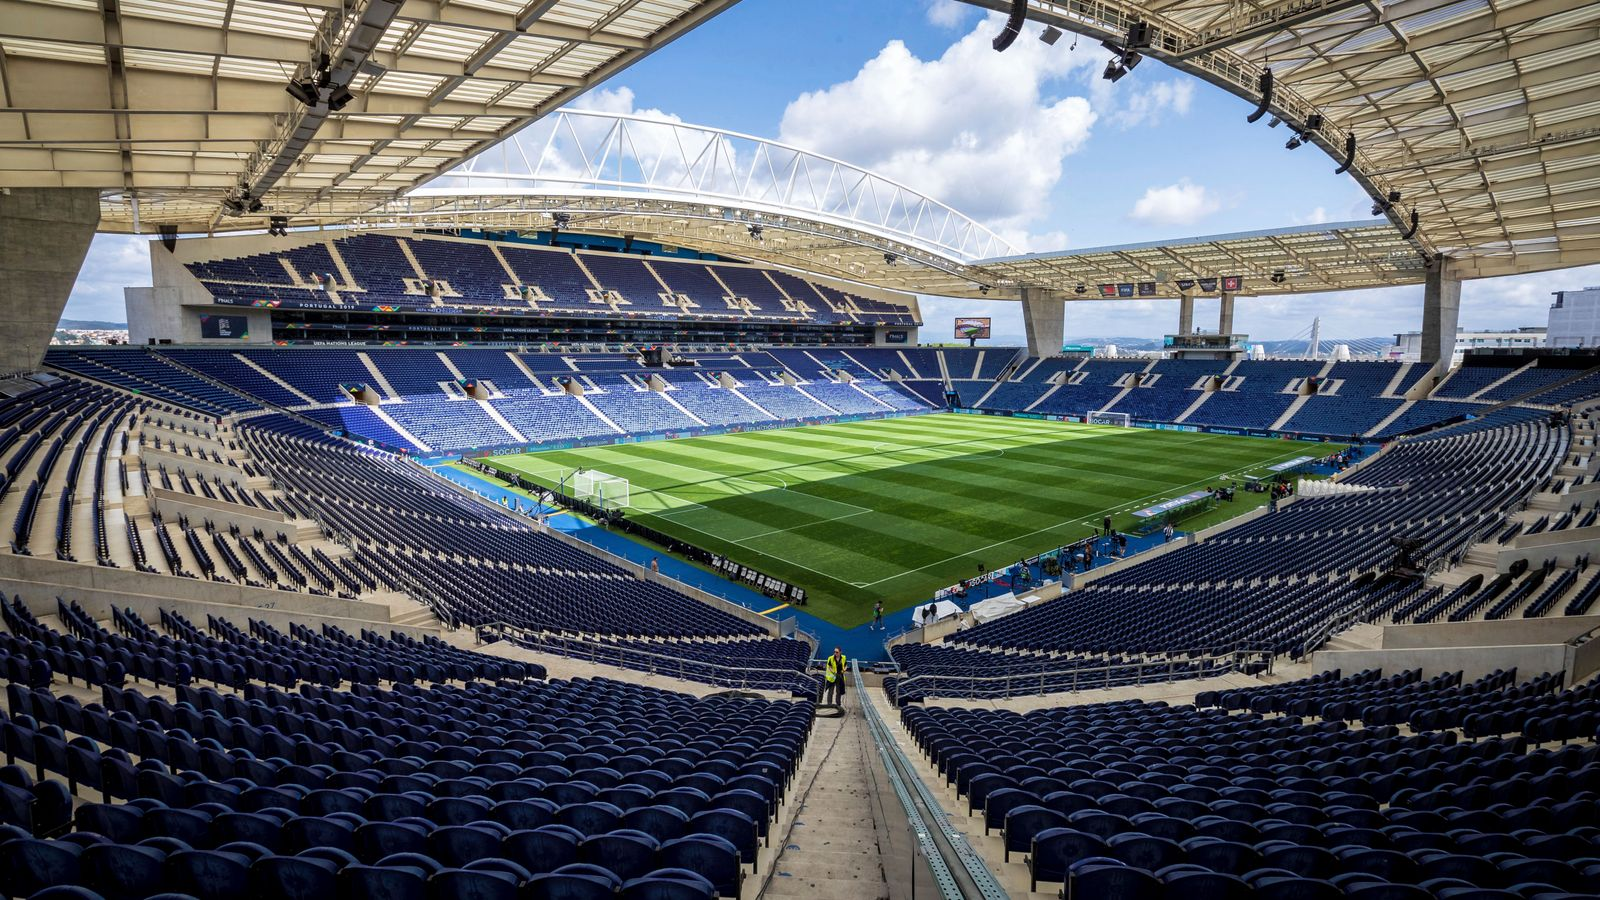 Champions League final moved from Istanbul to Portugal to allow fans to attend, UEFA announces